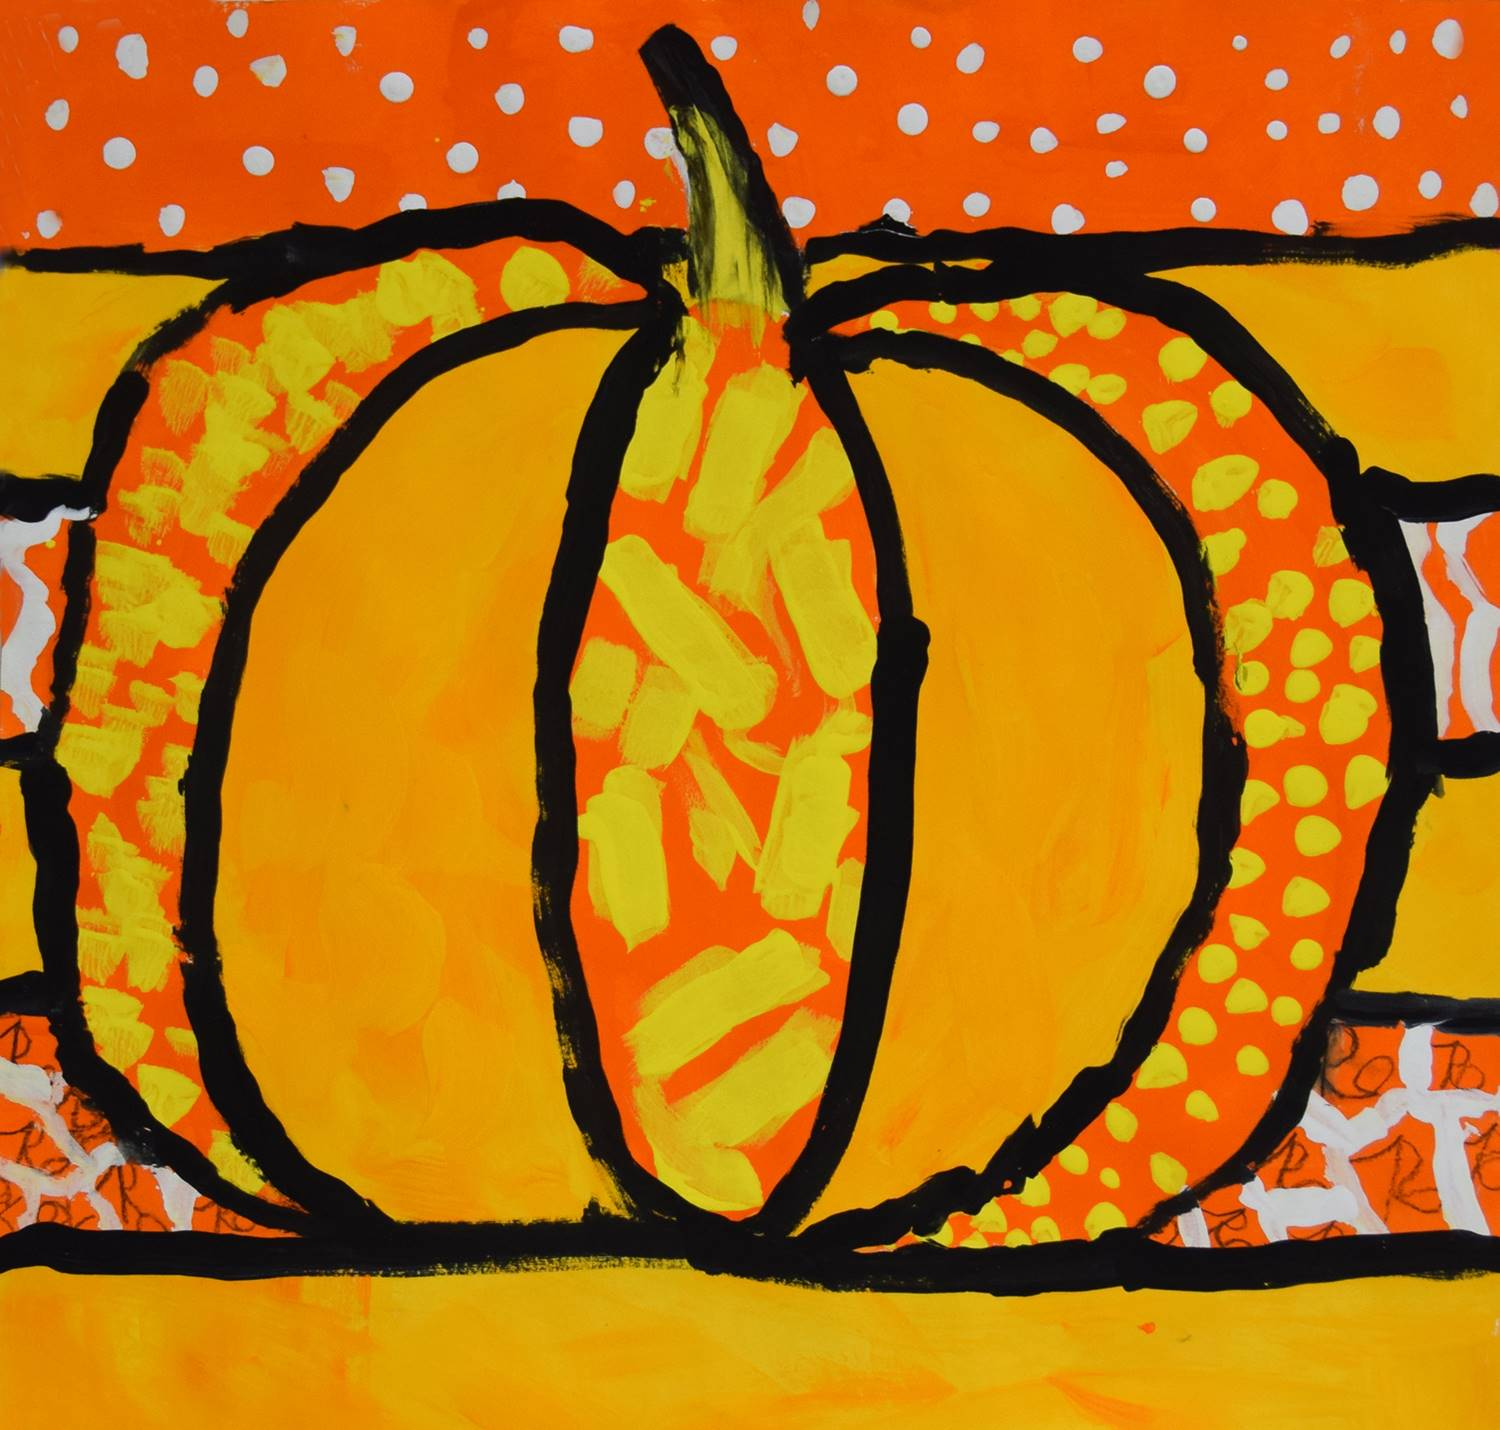 A bright pumpkin painted in dark orange, yellow orange, black, yellow and white by Rowan, Tioga Hill